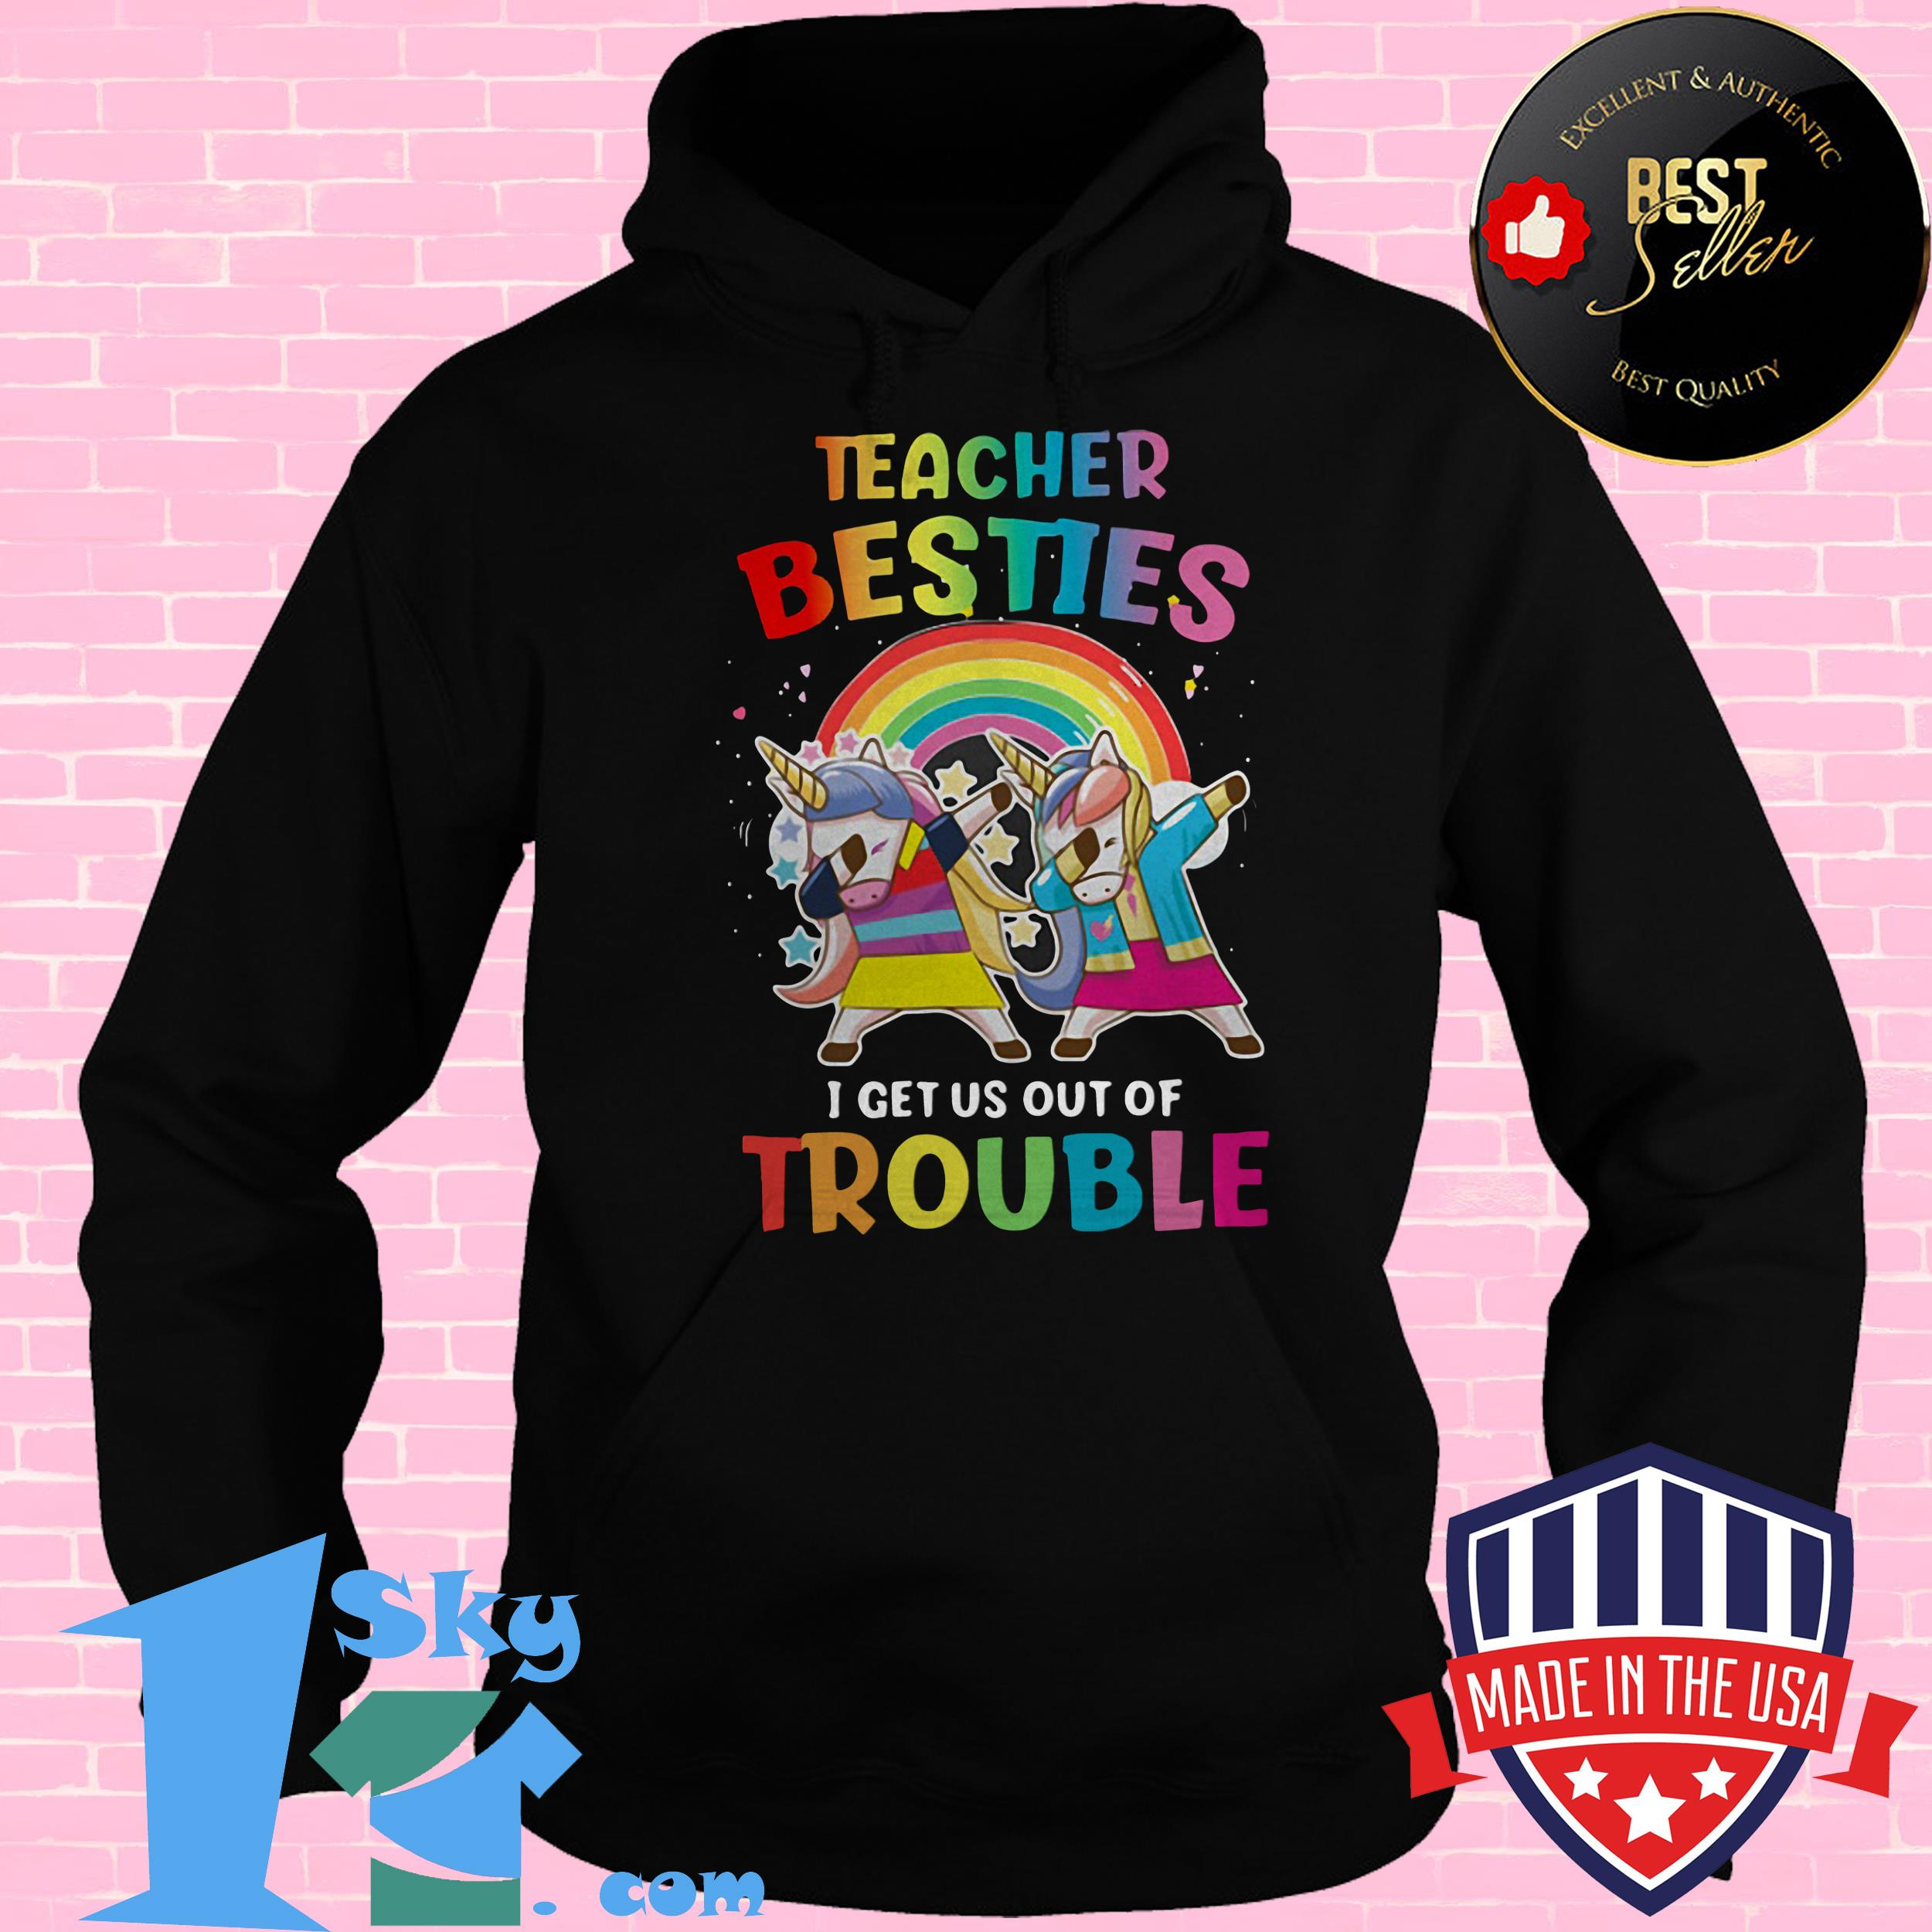 lgbt teacher besties i get us out of trouble unicorn hooodie - LGBT Teacher Besties I Get Us Out Of Trouble Unicorn shirt